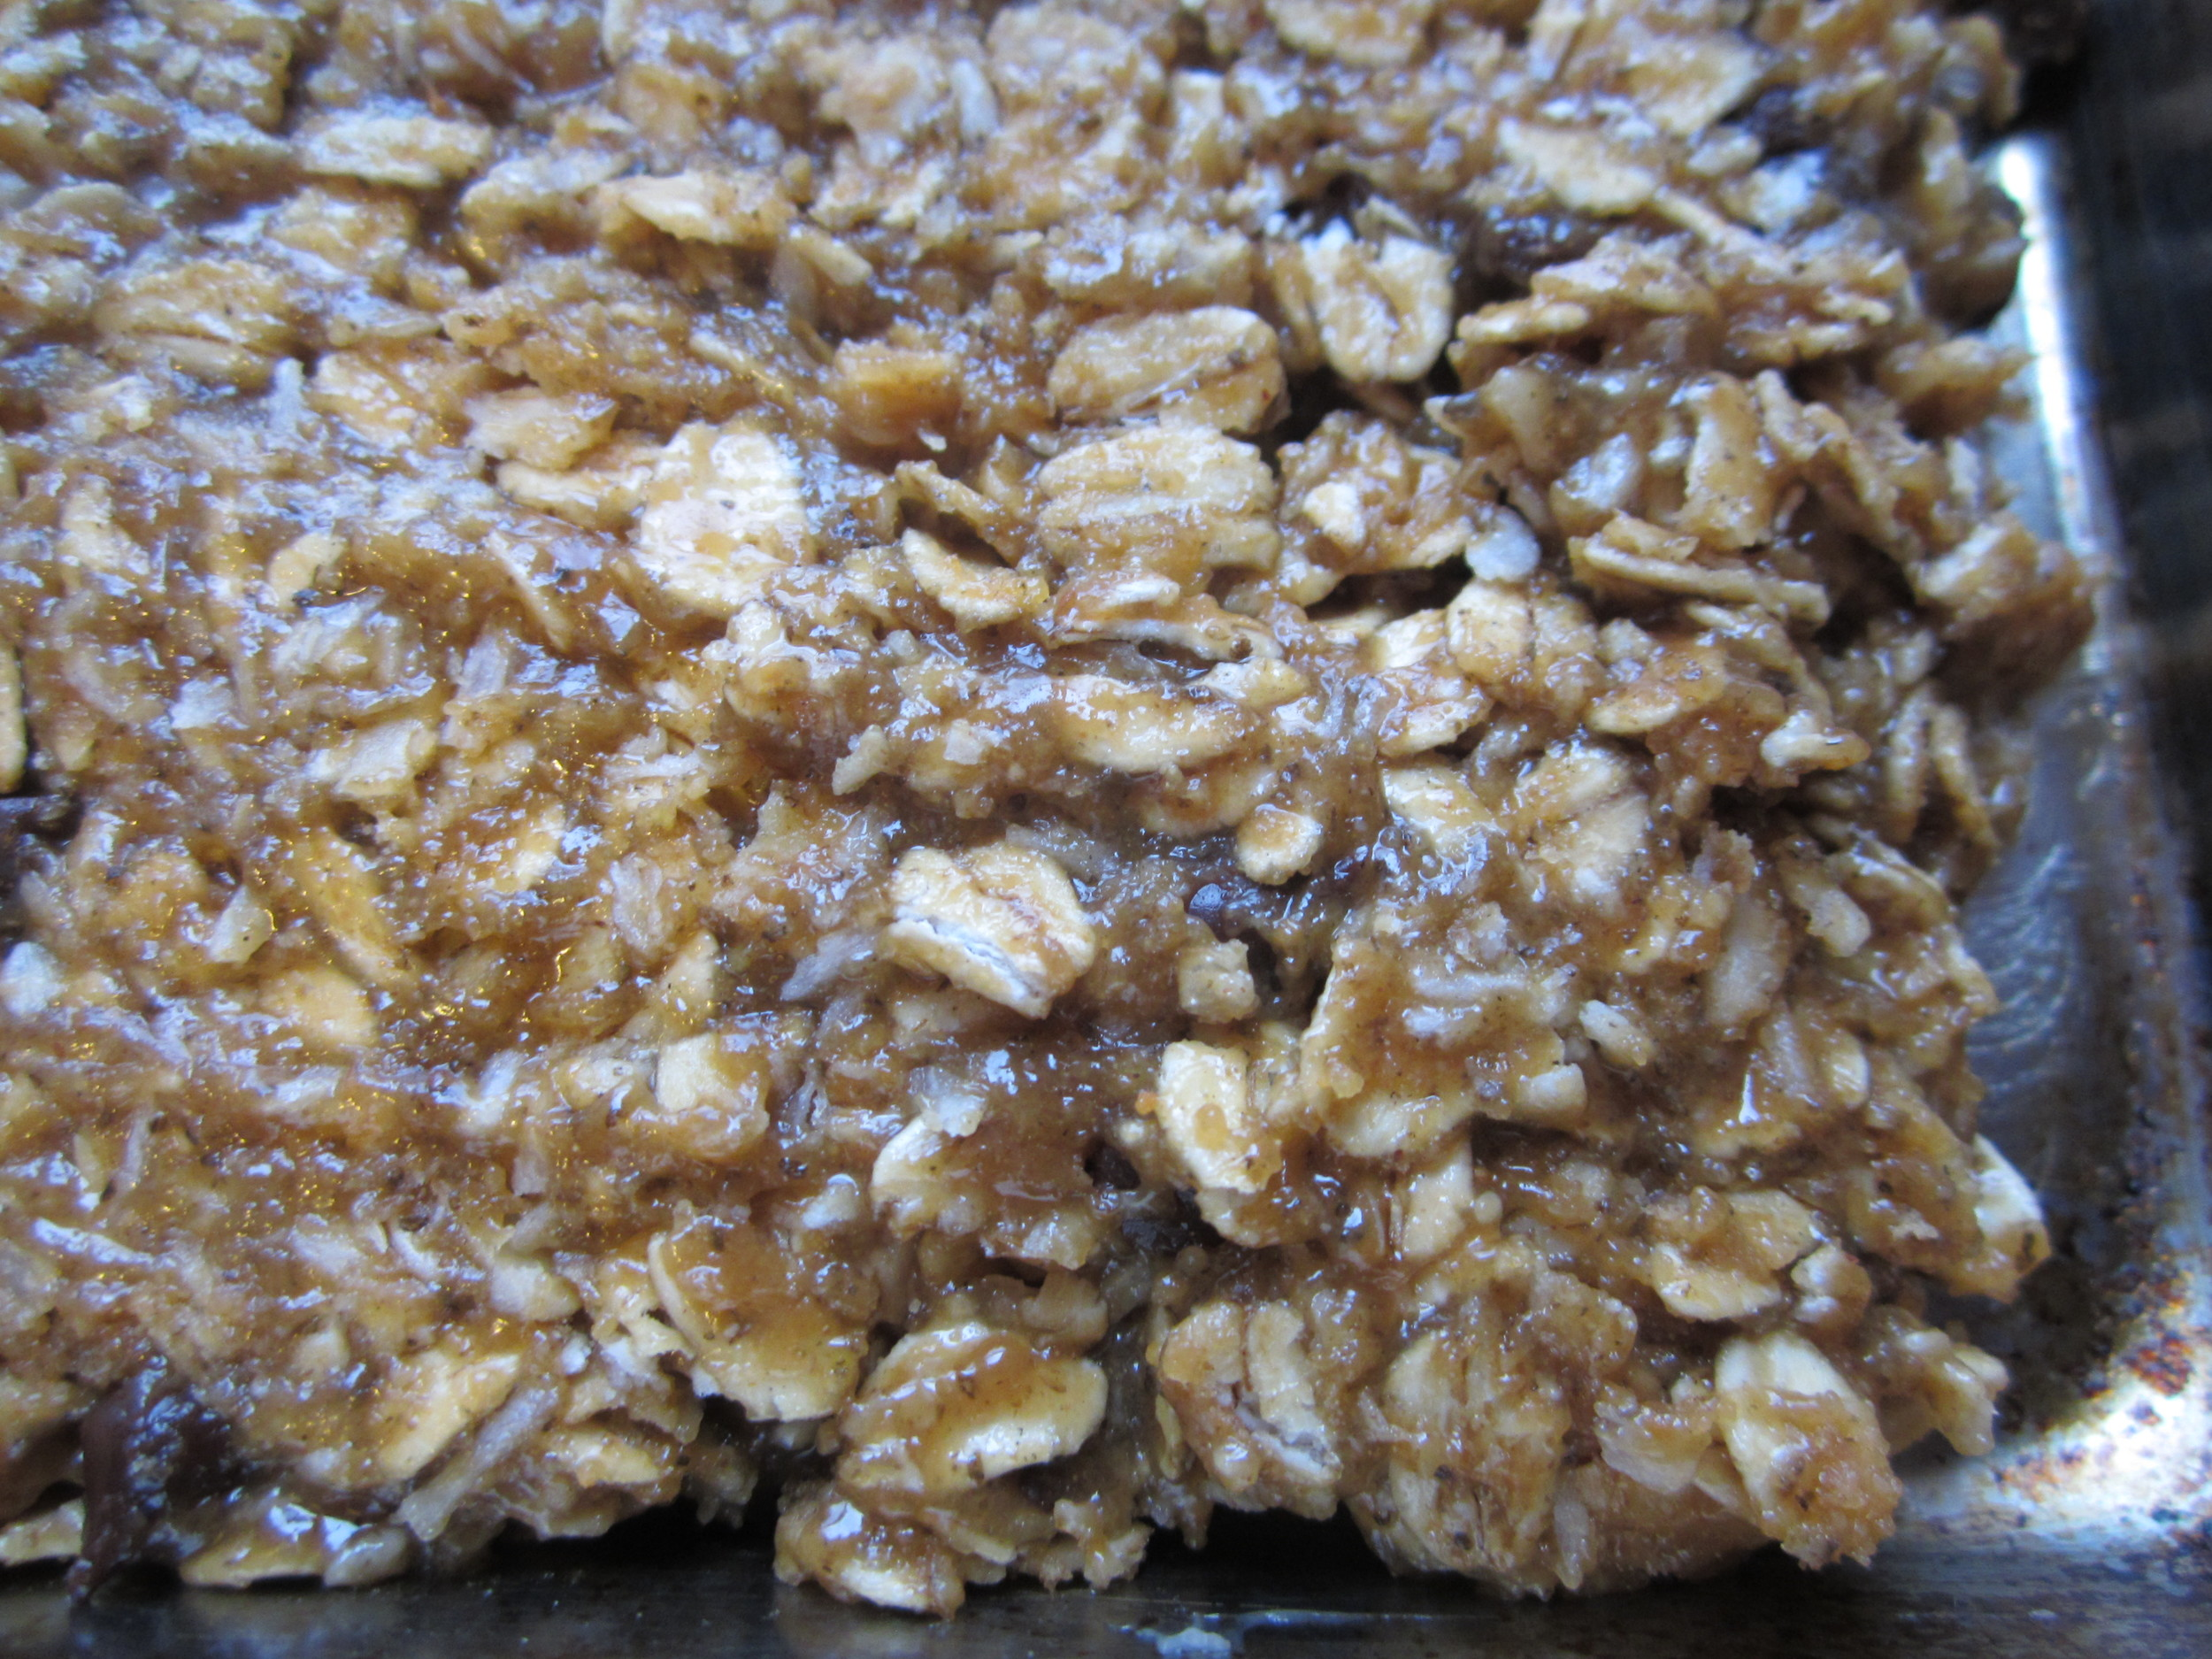 Missing your nutrition bars on low FODMAP diet?  Try these .